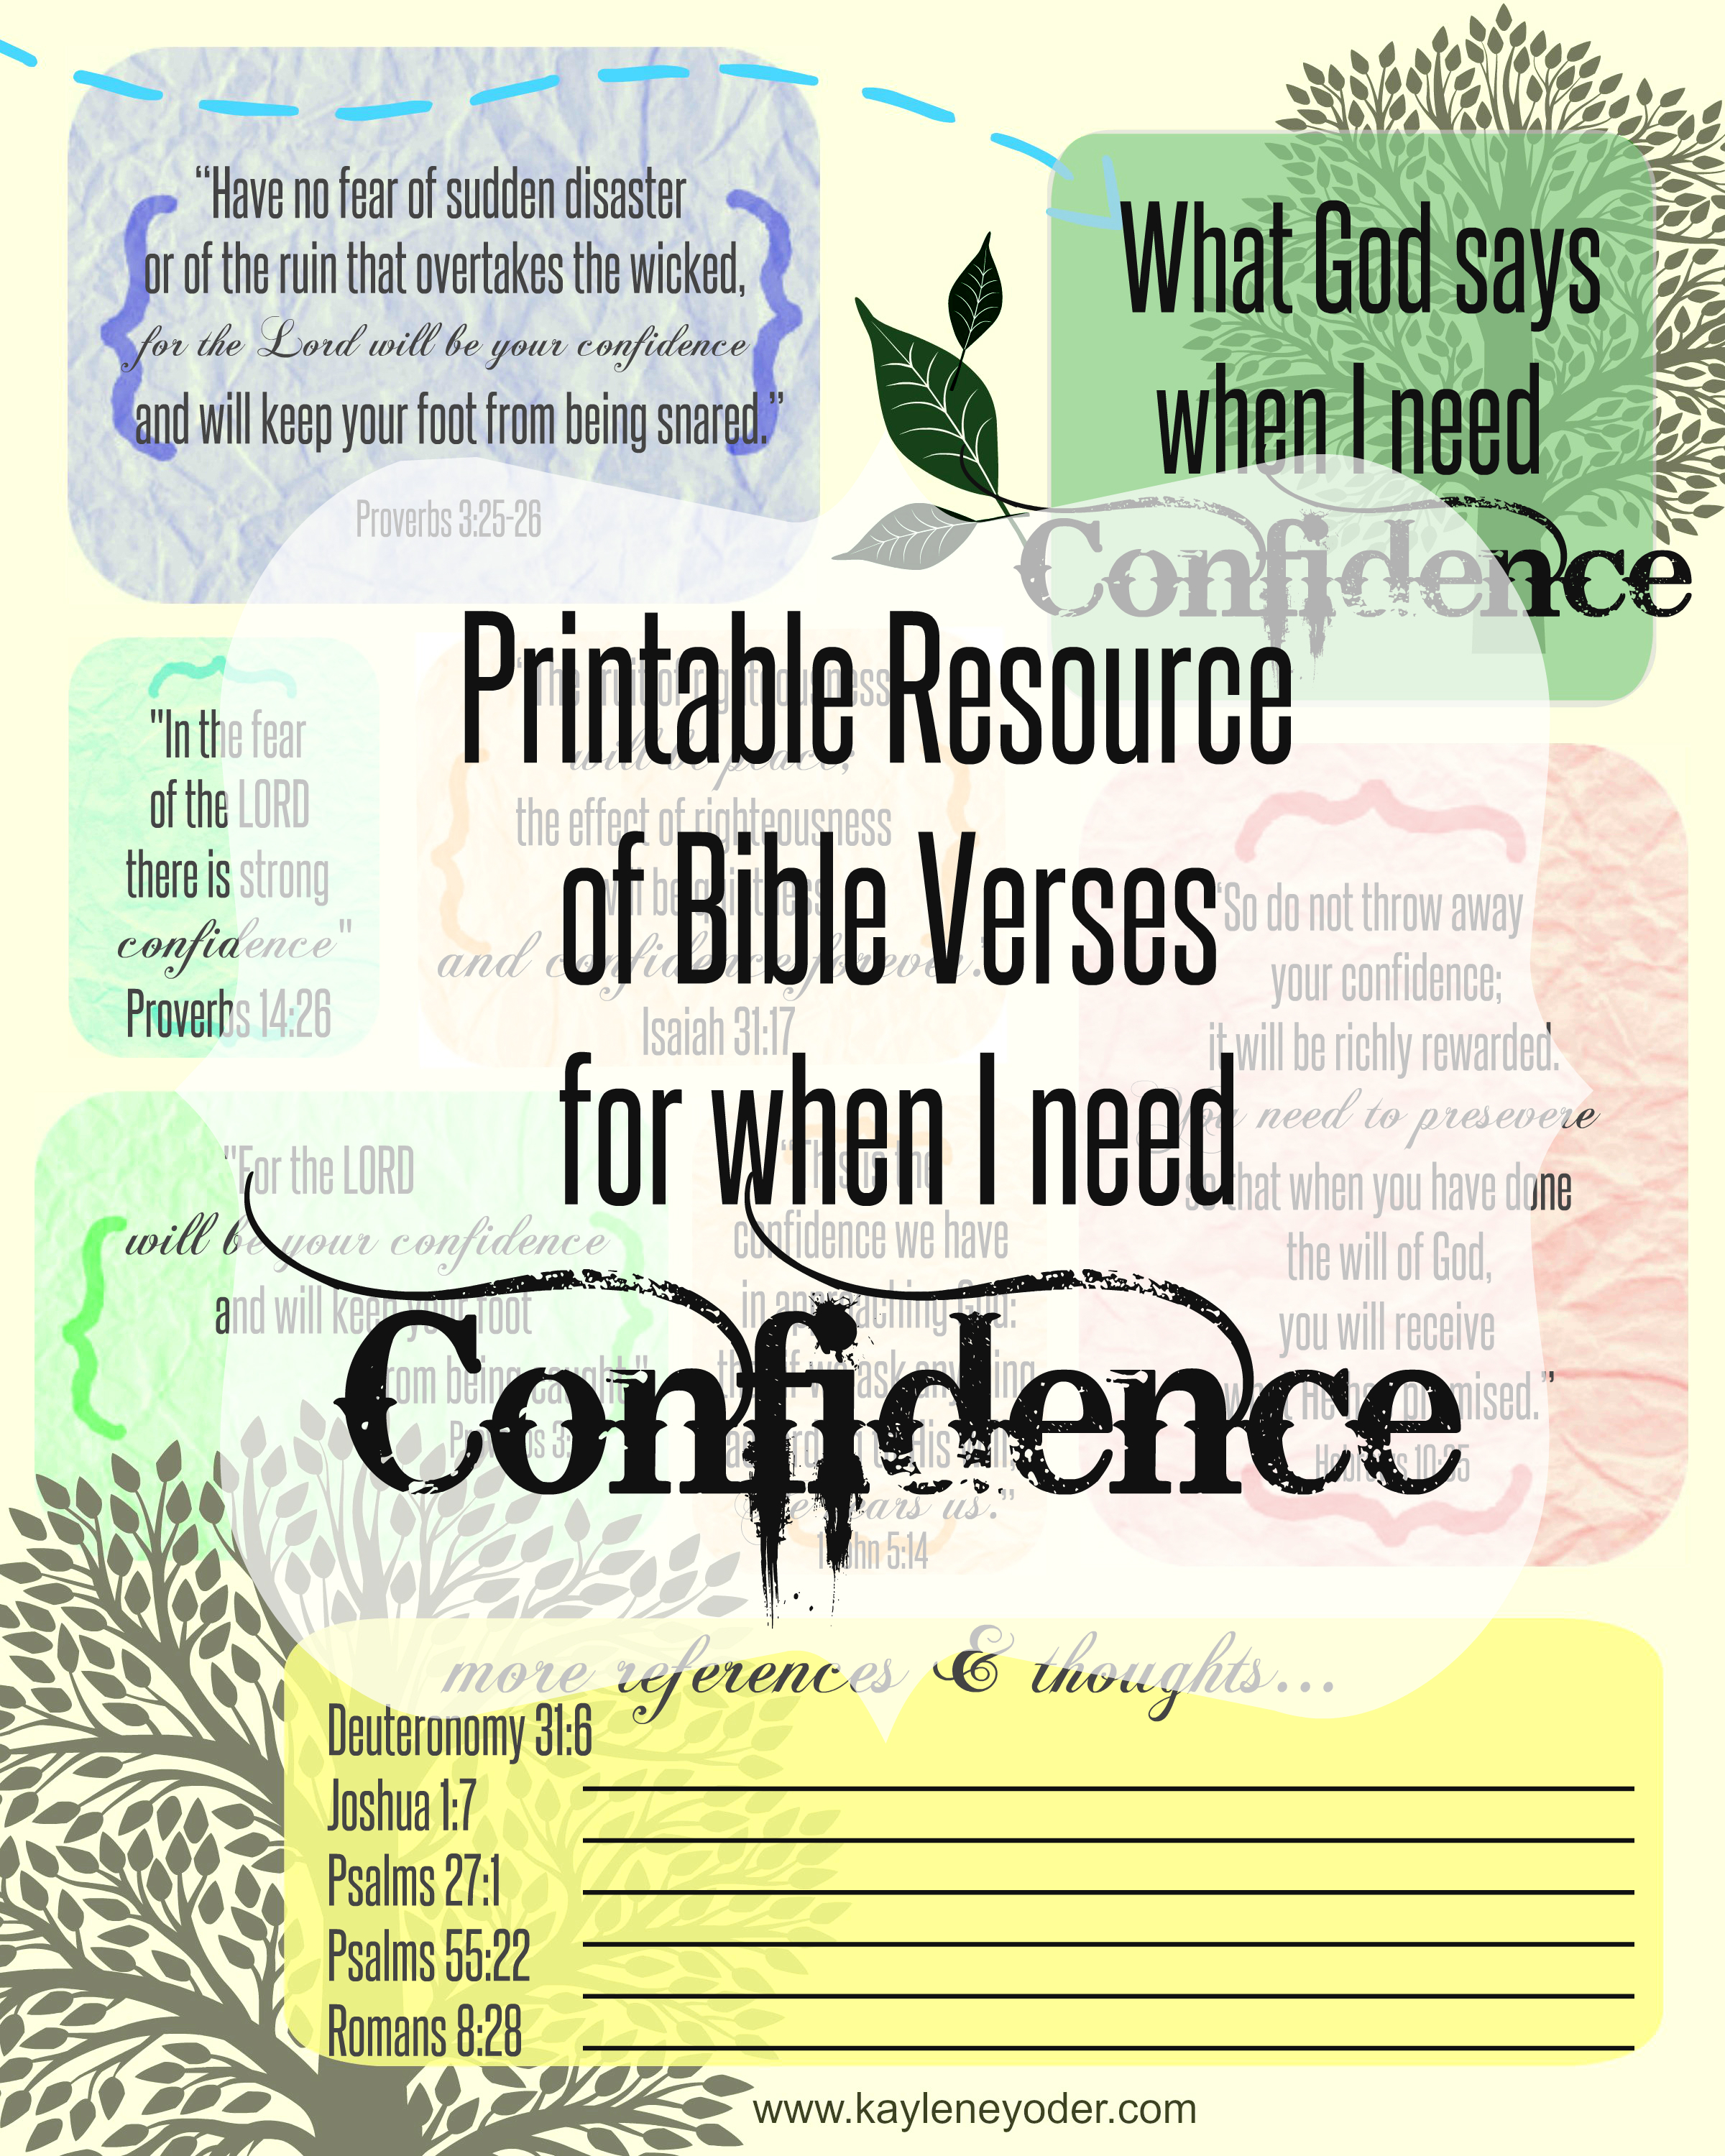 What God says when I need Confidence